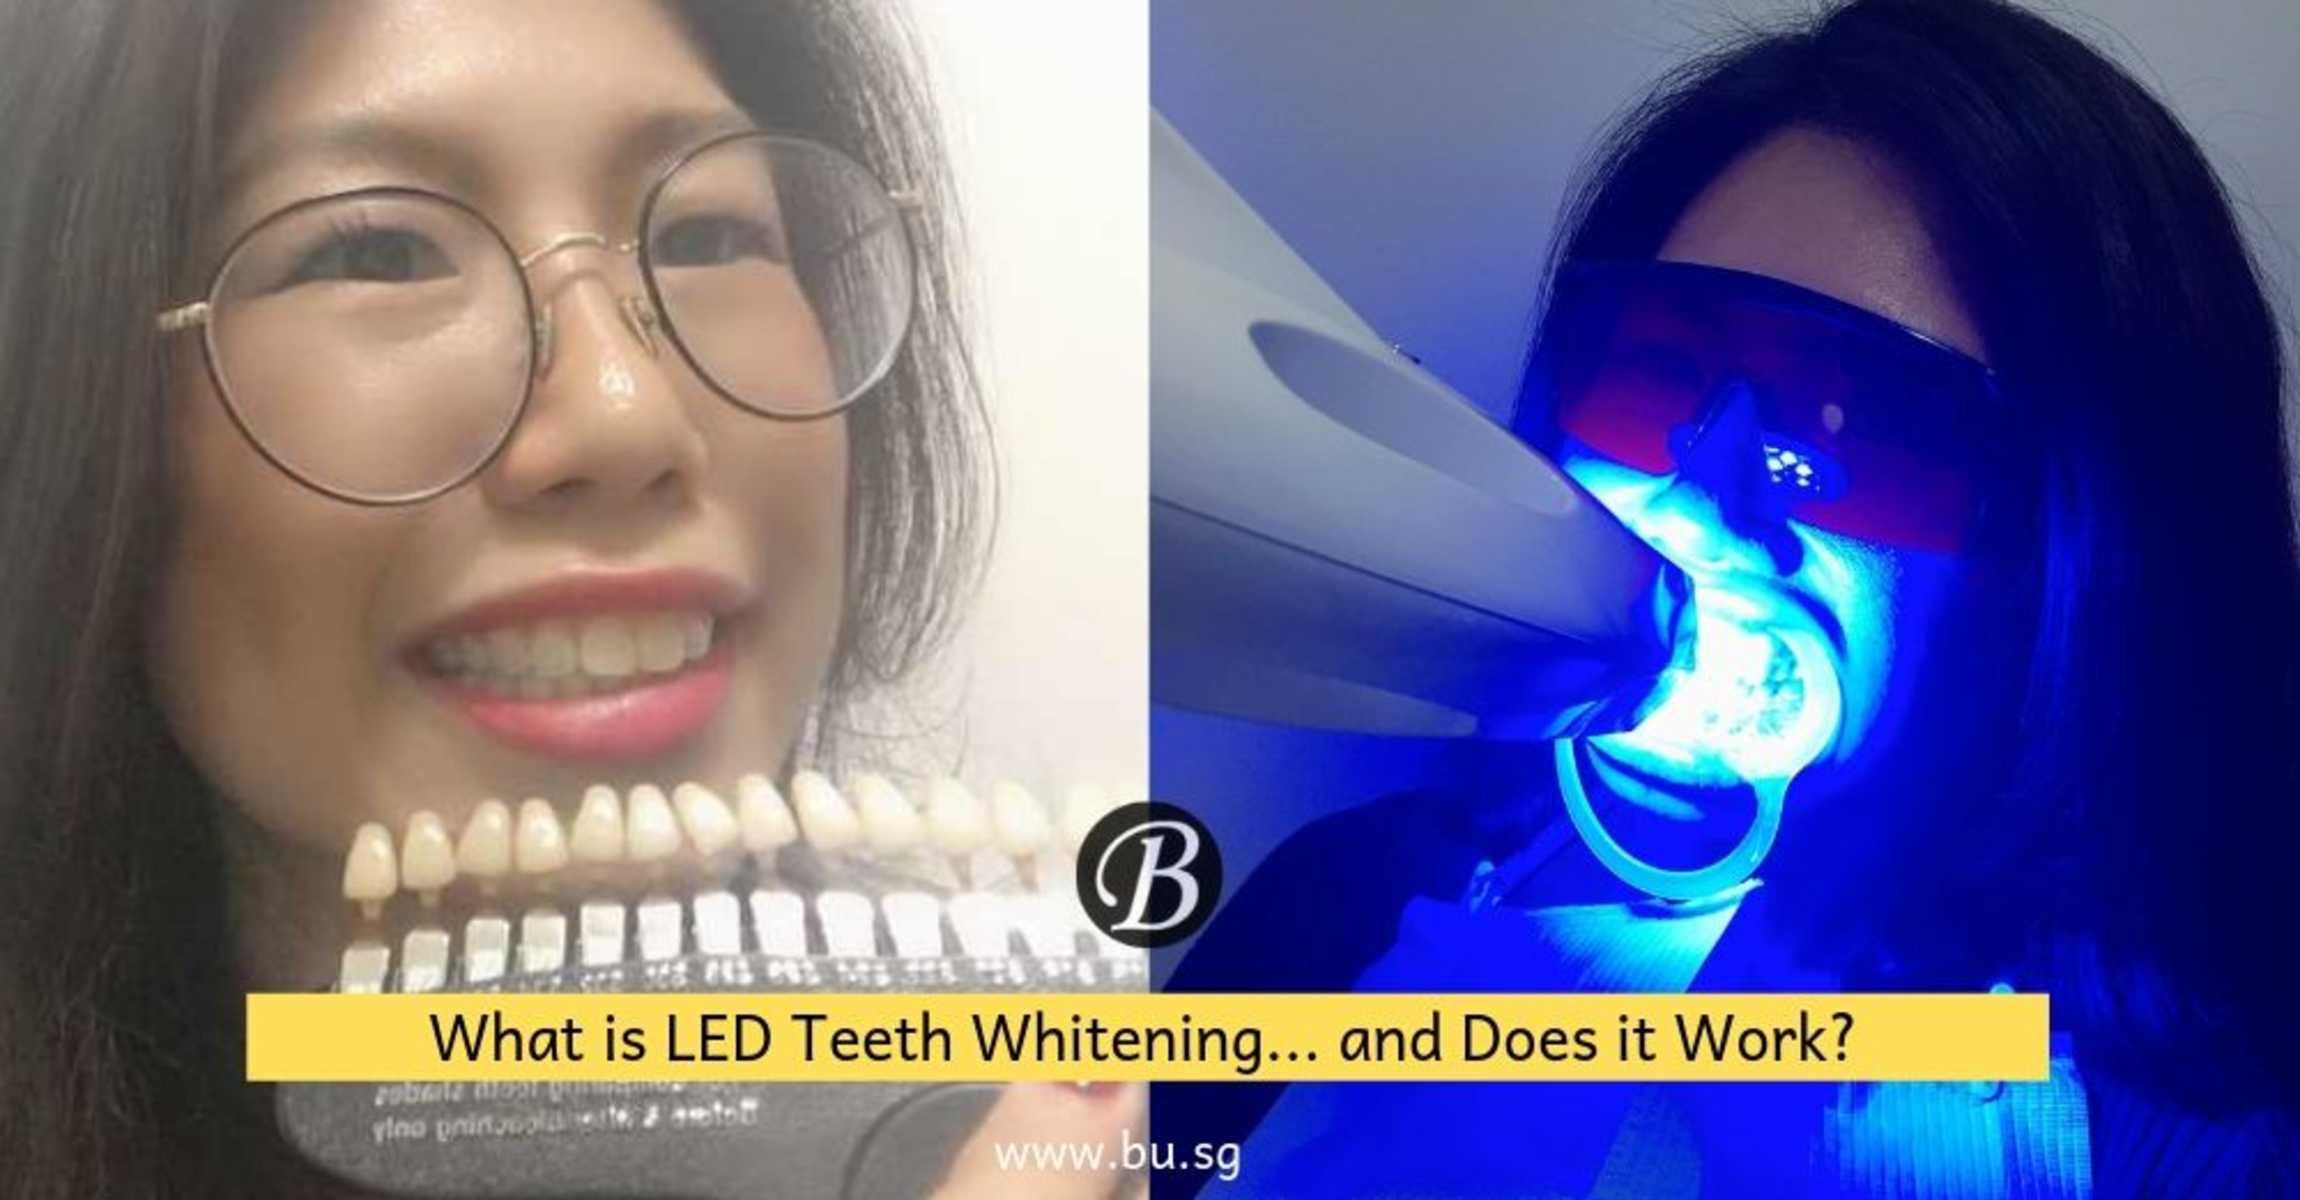 What is LED Teeth Whitening? Agent G Gives You Her Unbiased Review